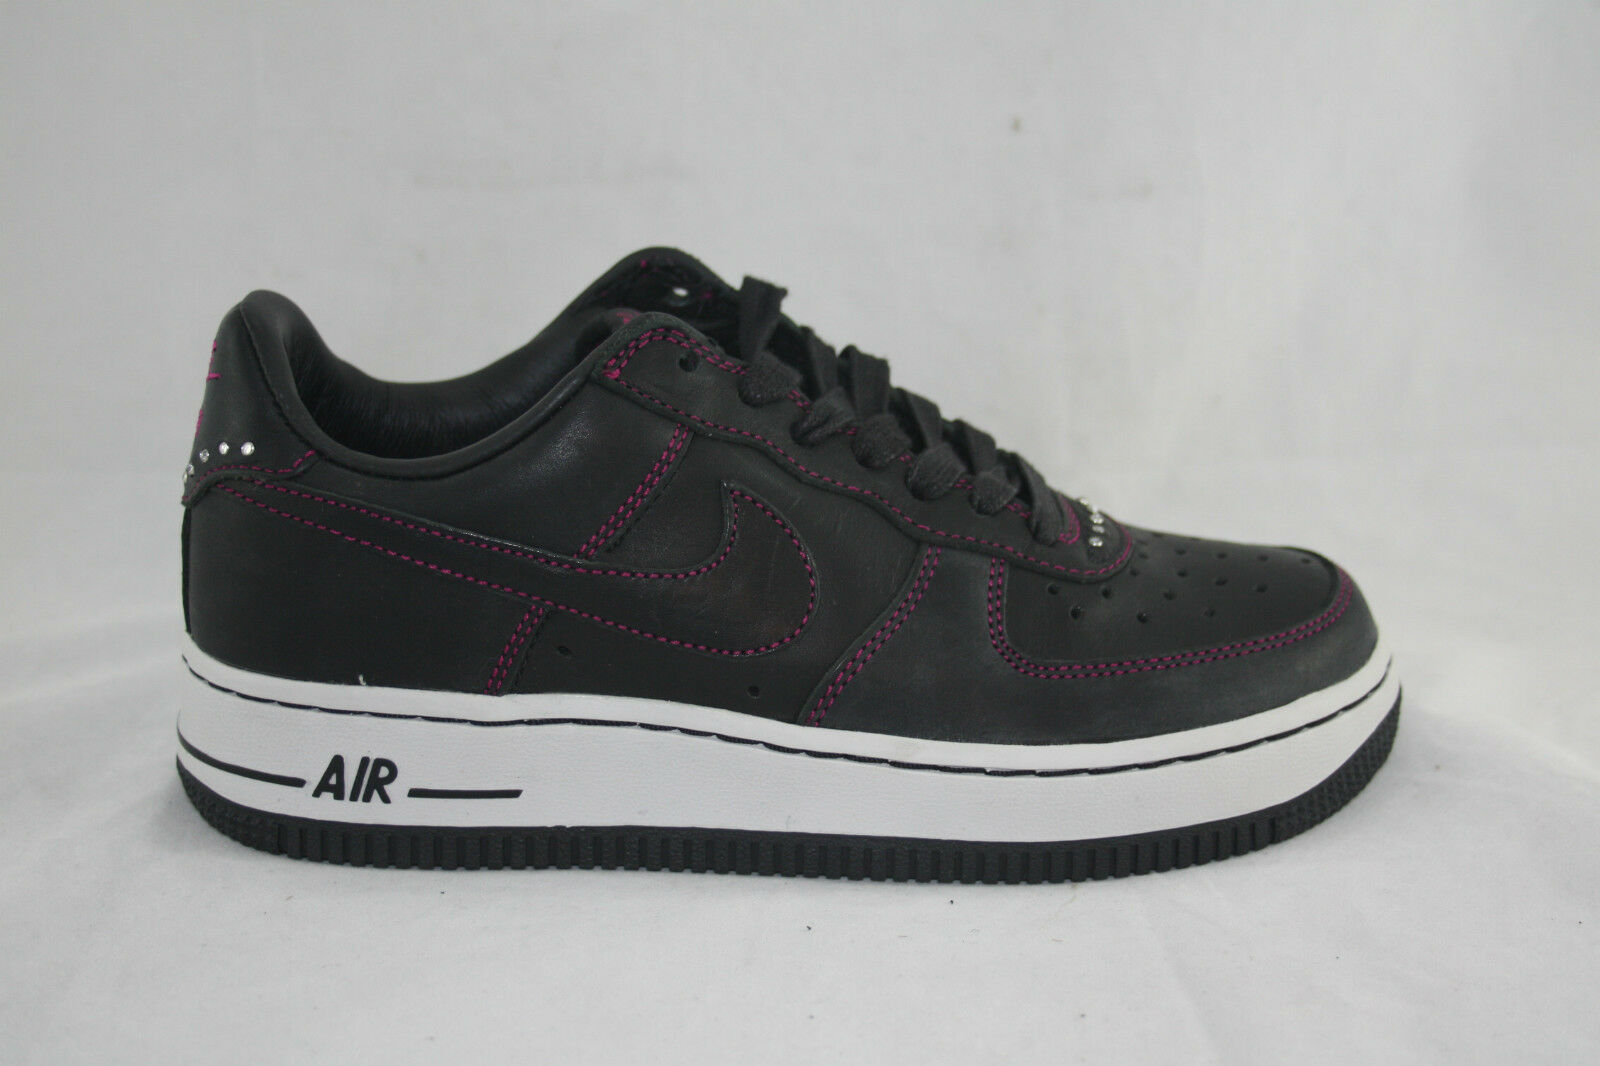 Wmn's Nike Air Force 1 Premium SNEAKER 308038-001 Black/Rave Pink  MSRP $110.00